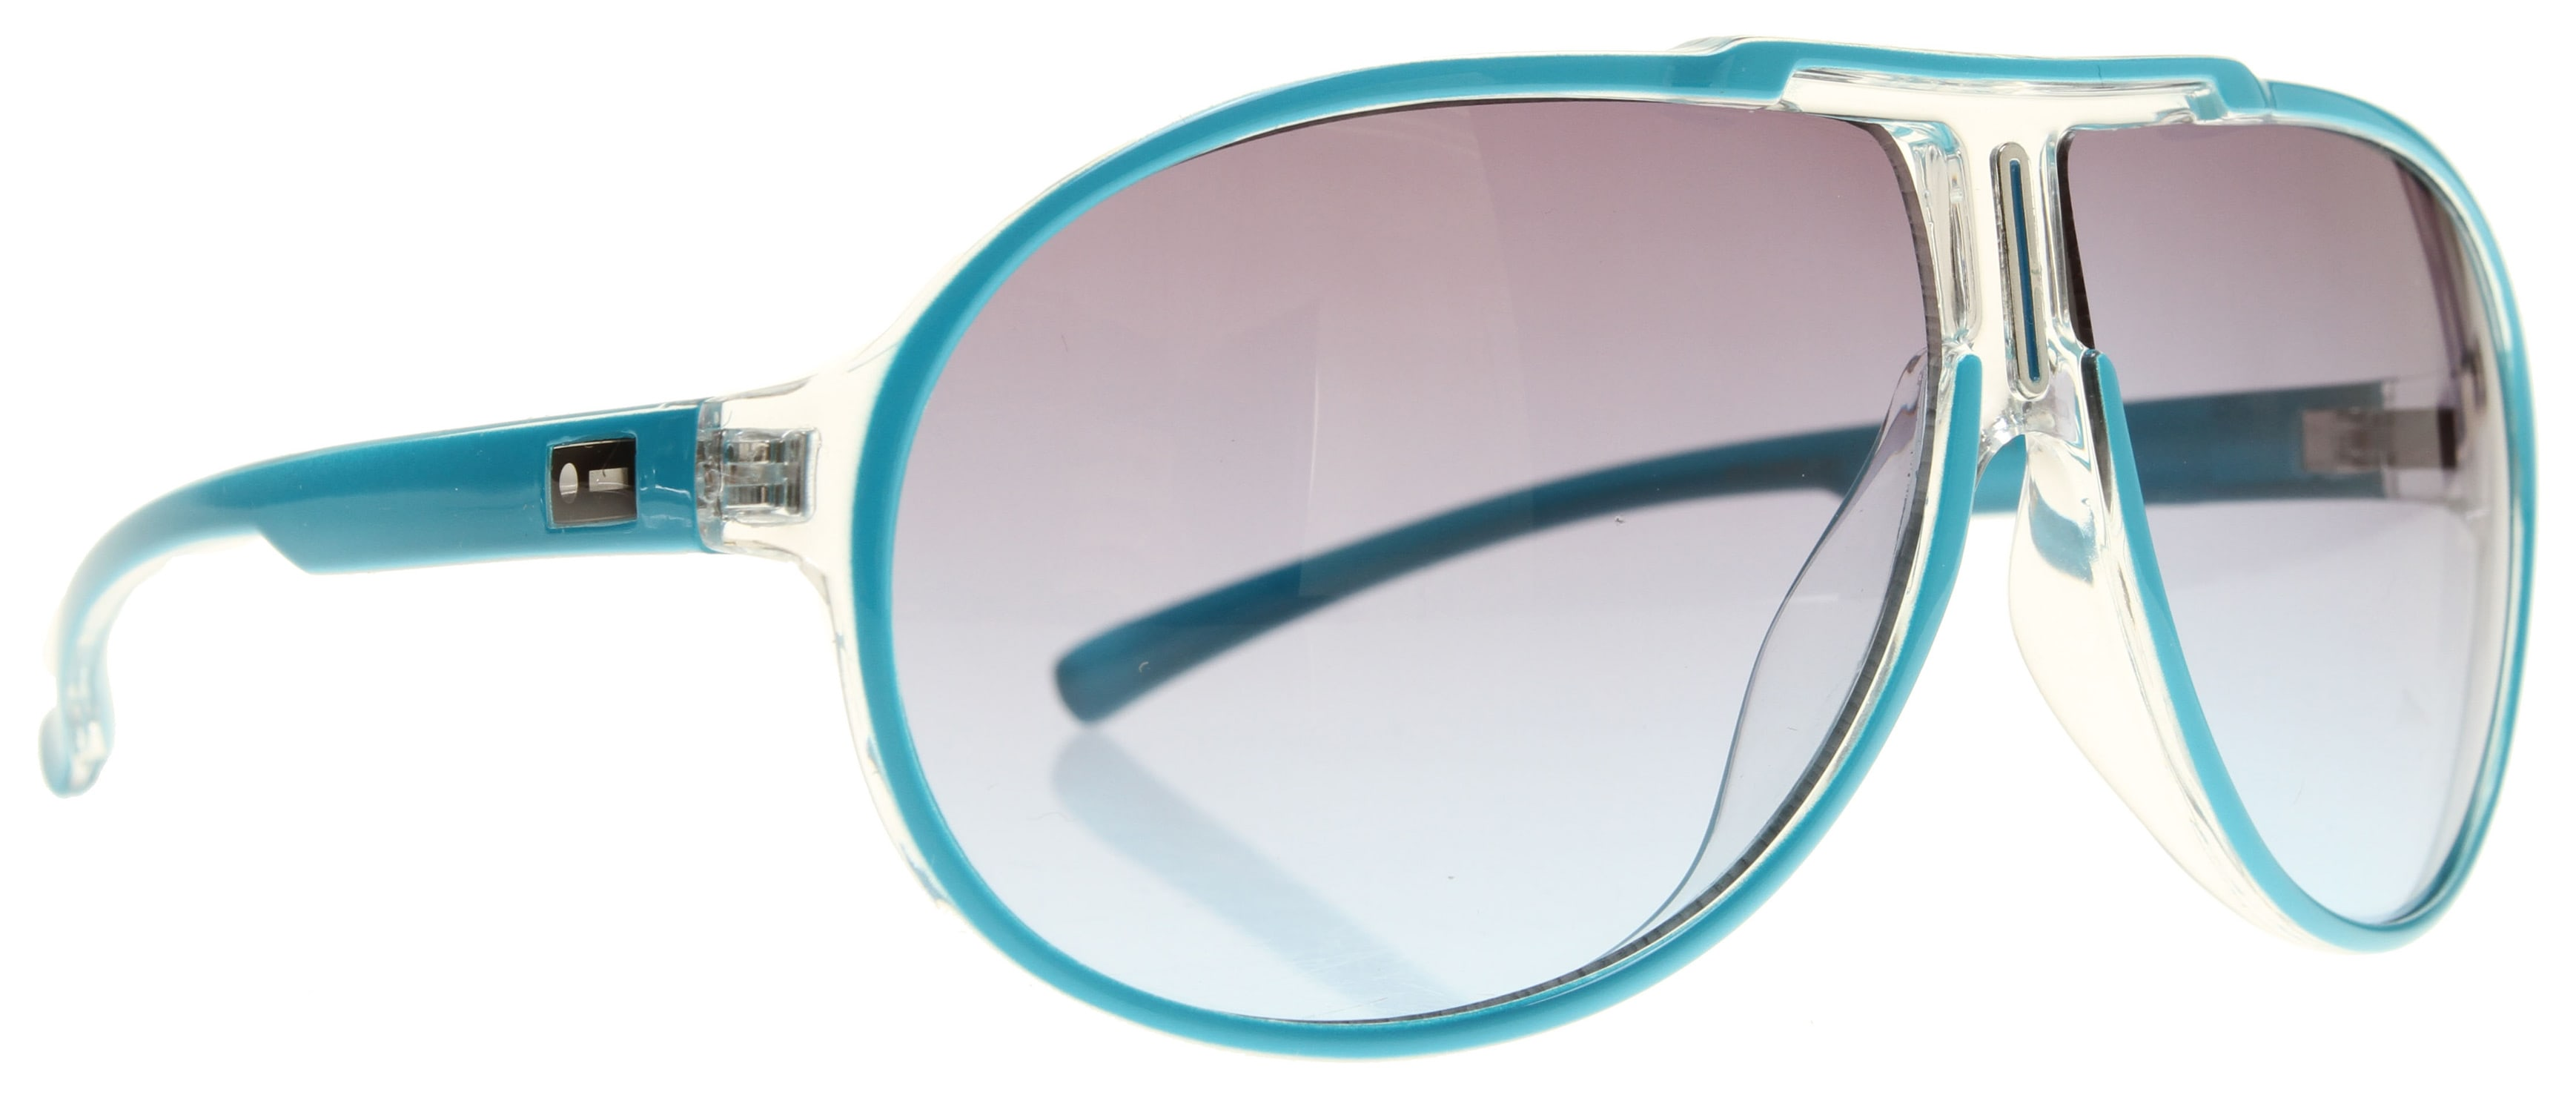 Shop for Dot Dash Wanksta Sunglasses Cyan/Gradient Lens - Men's